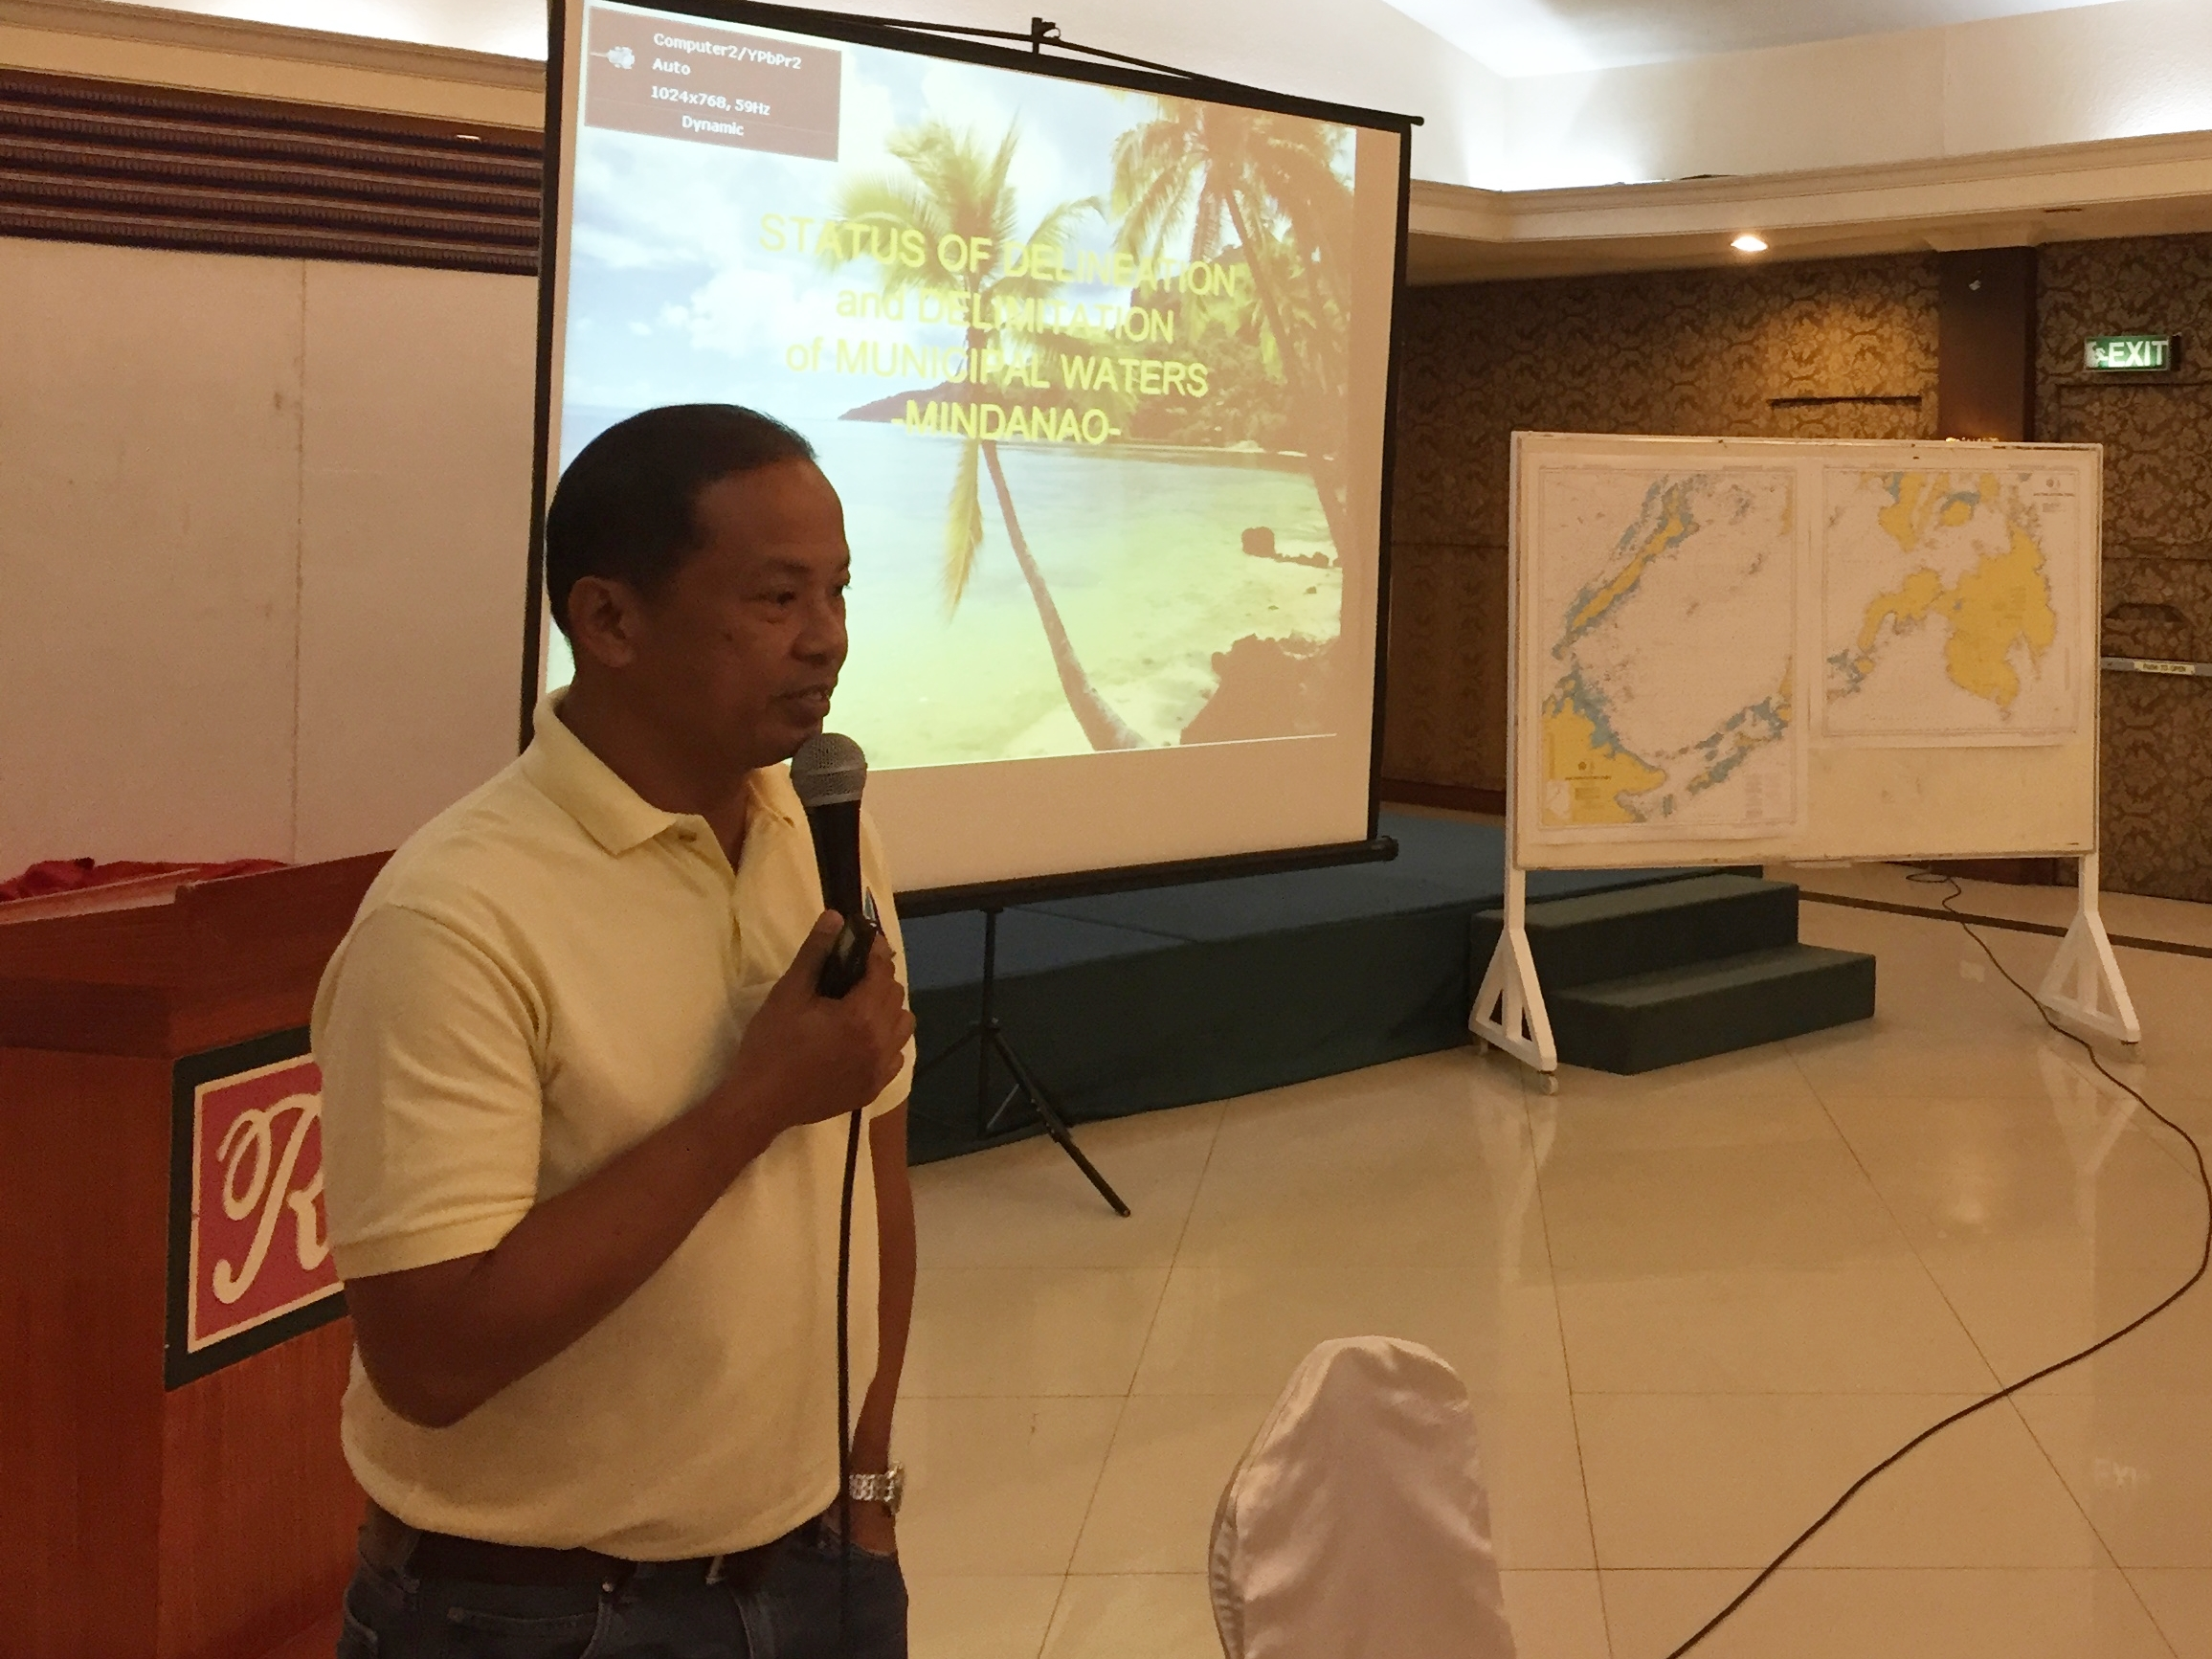 Engr. Mario Princer explaining the status of municipal water delimitation for Mindanao LGUs